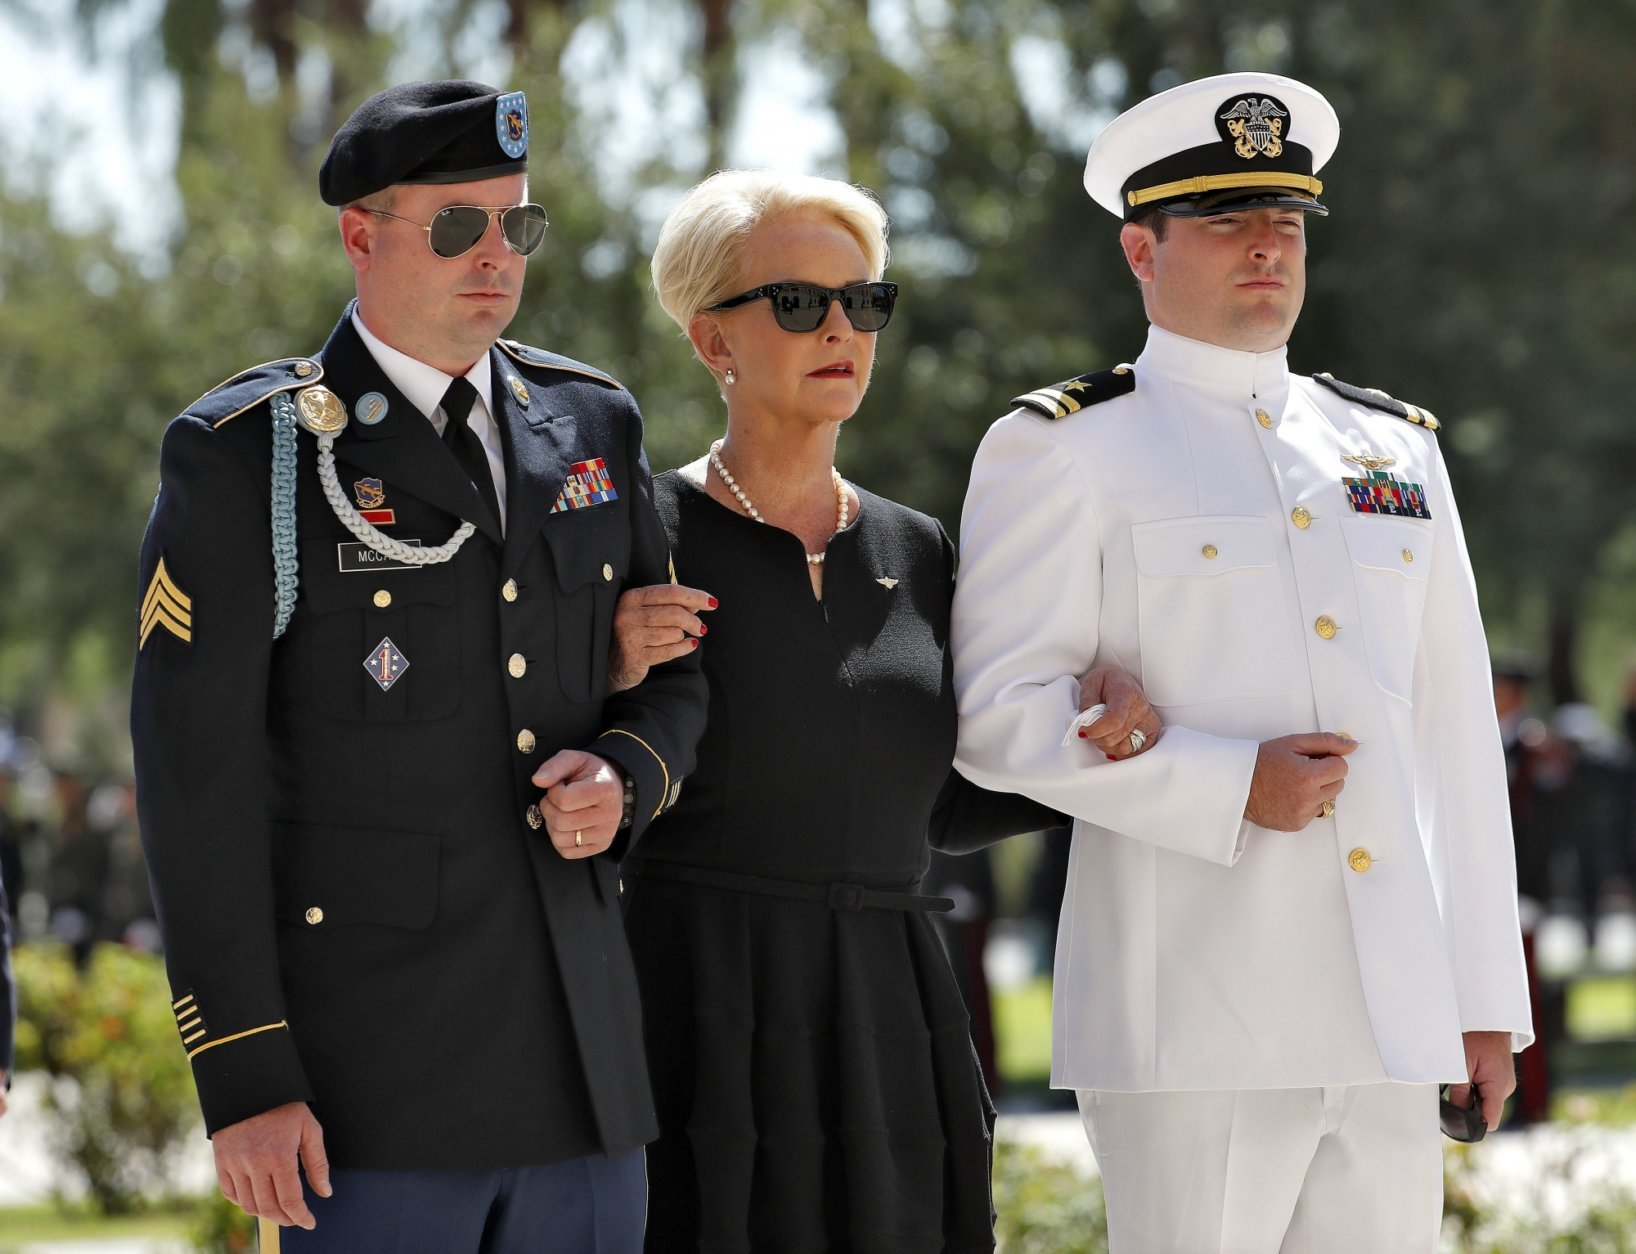 Cindy McCain, escorted by sons, Jack McCain, right, and Jimmy McCain, follow behind military personal carrying the casket of Sen. John McCain, R-Ariz., into the Capitol rotunda for a memorial service, Wednesday, Aug. 29, 2018, at the Capitol in Phoenix. (AP Photo/Matt York)